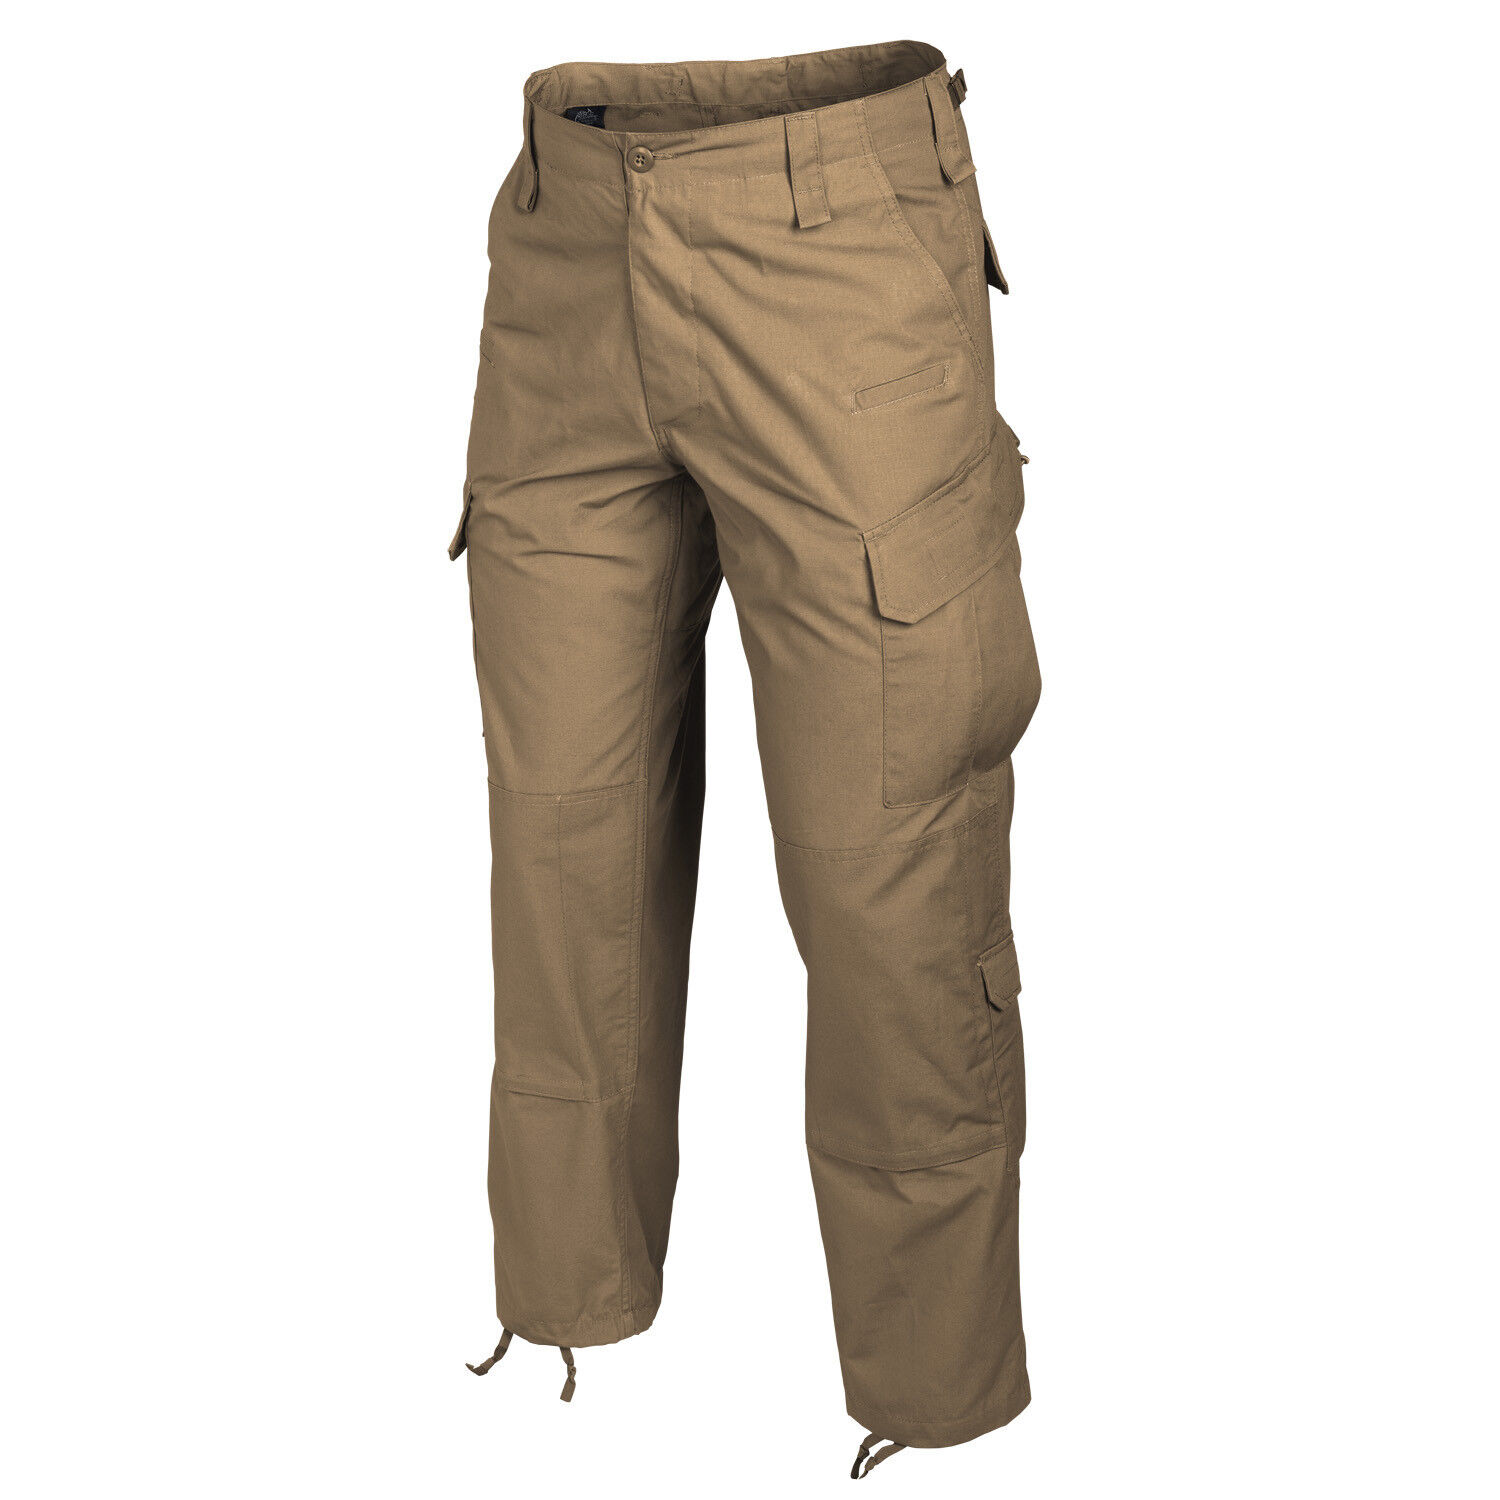 HELIKON TEX HTX C P U Outdoor Freizeit pants trousers Hose coyote Medium Regular  | Neue Produkte im Jahr 2019